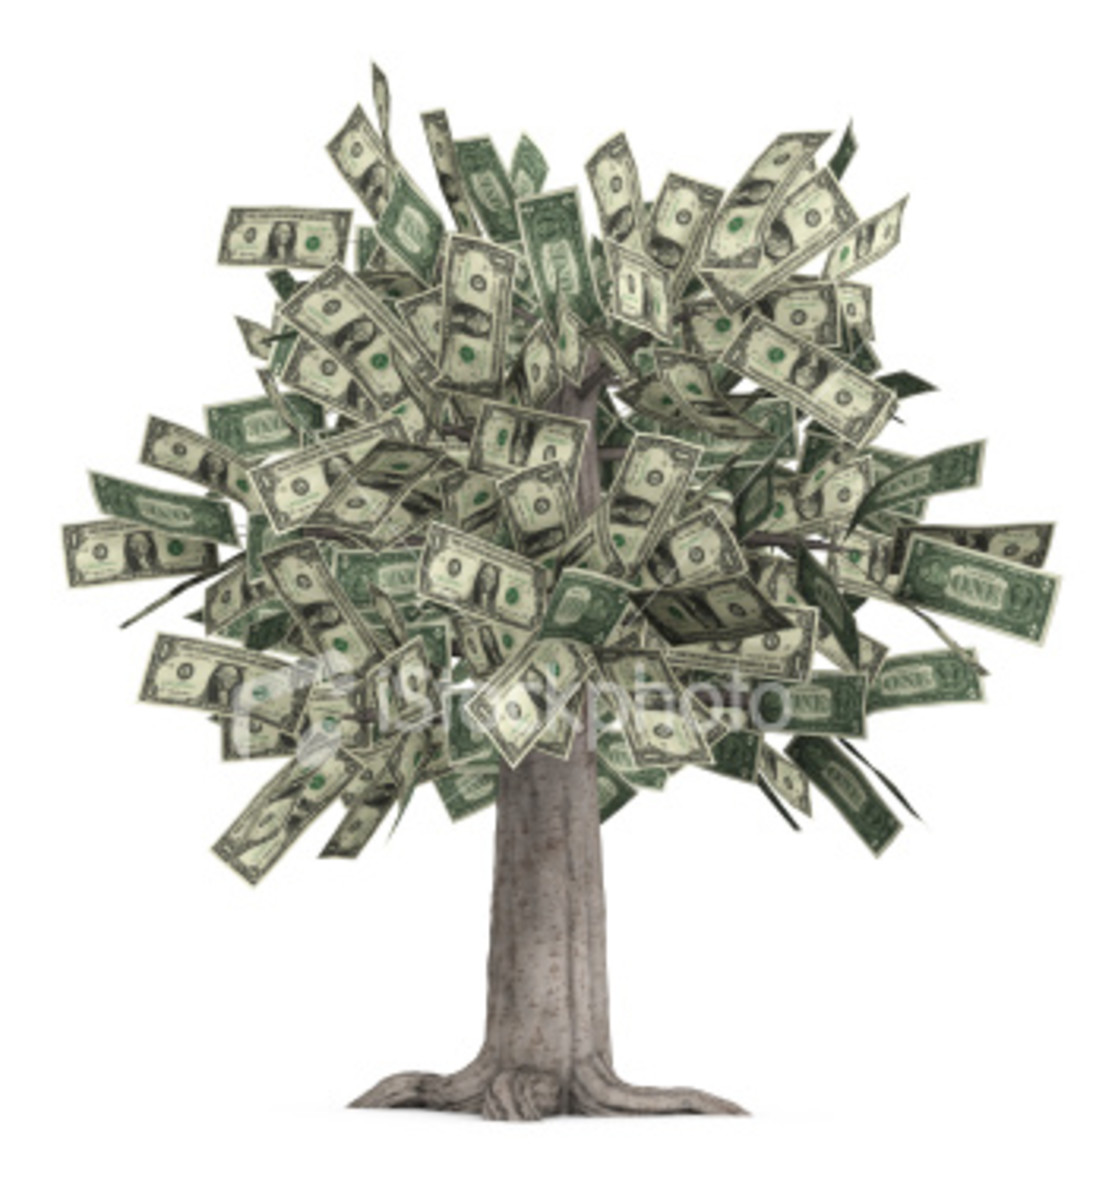 An RV Loan can be very expensive, especially over time, so if you don't have a Money Tree .......